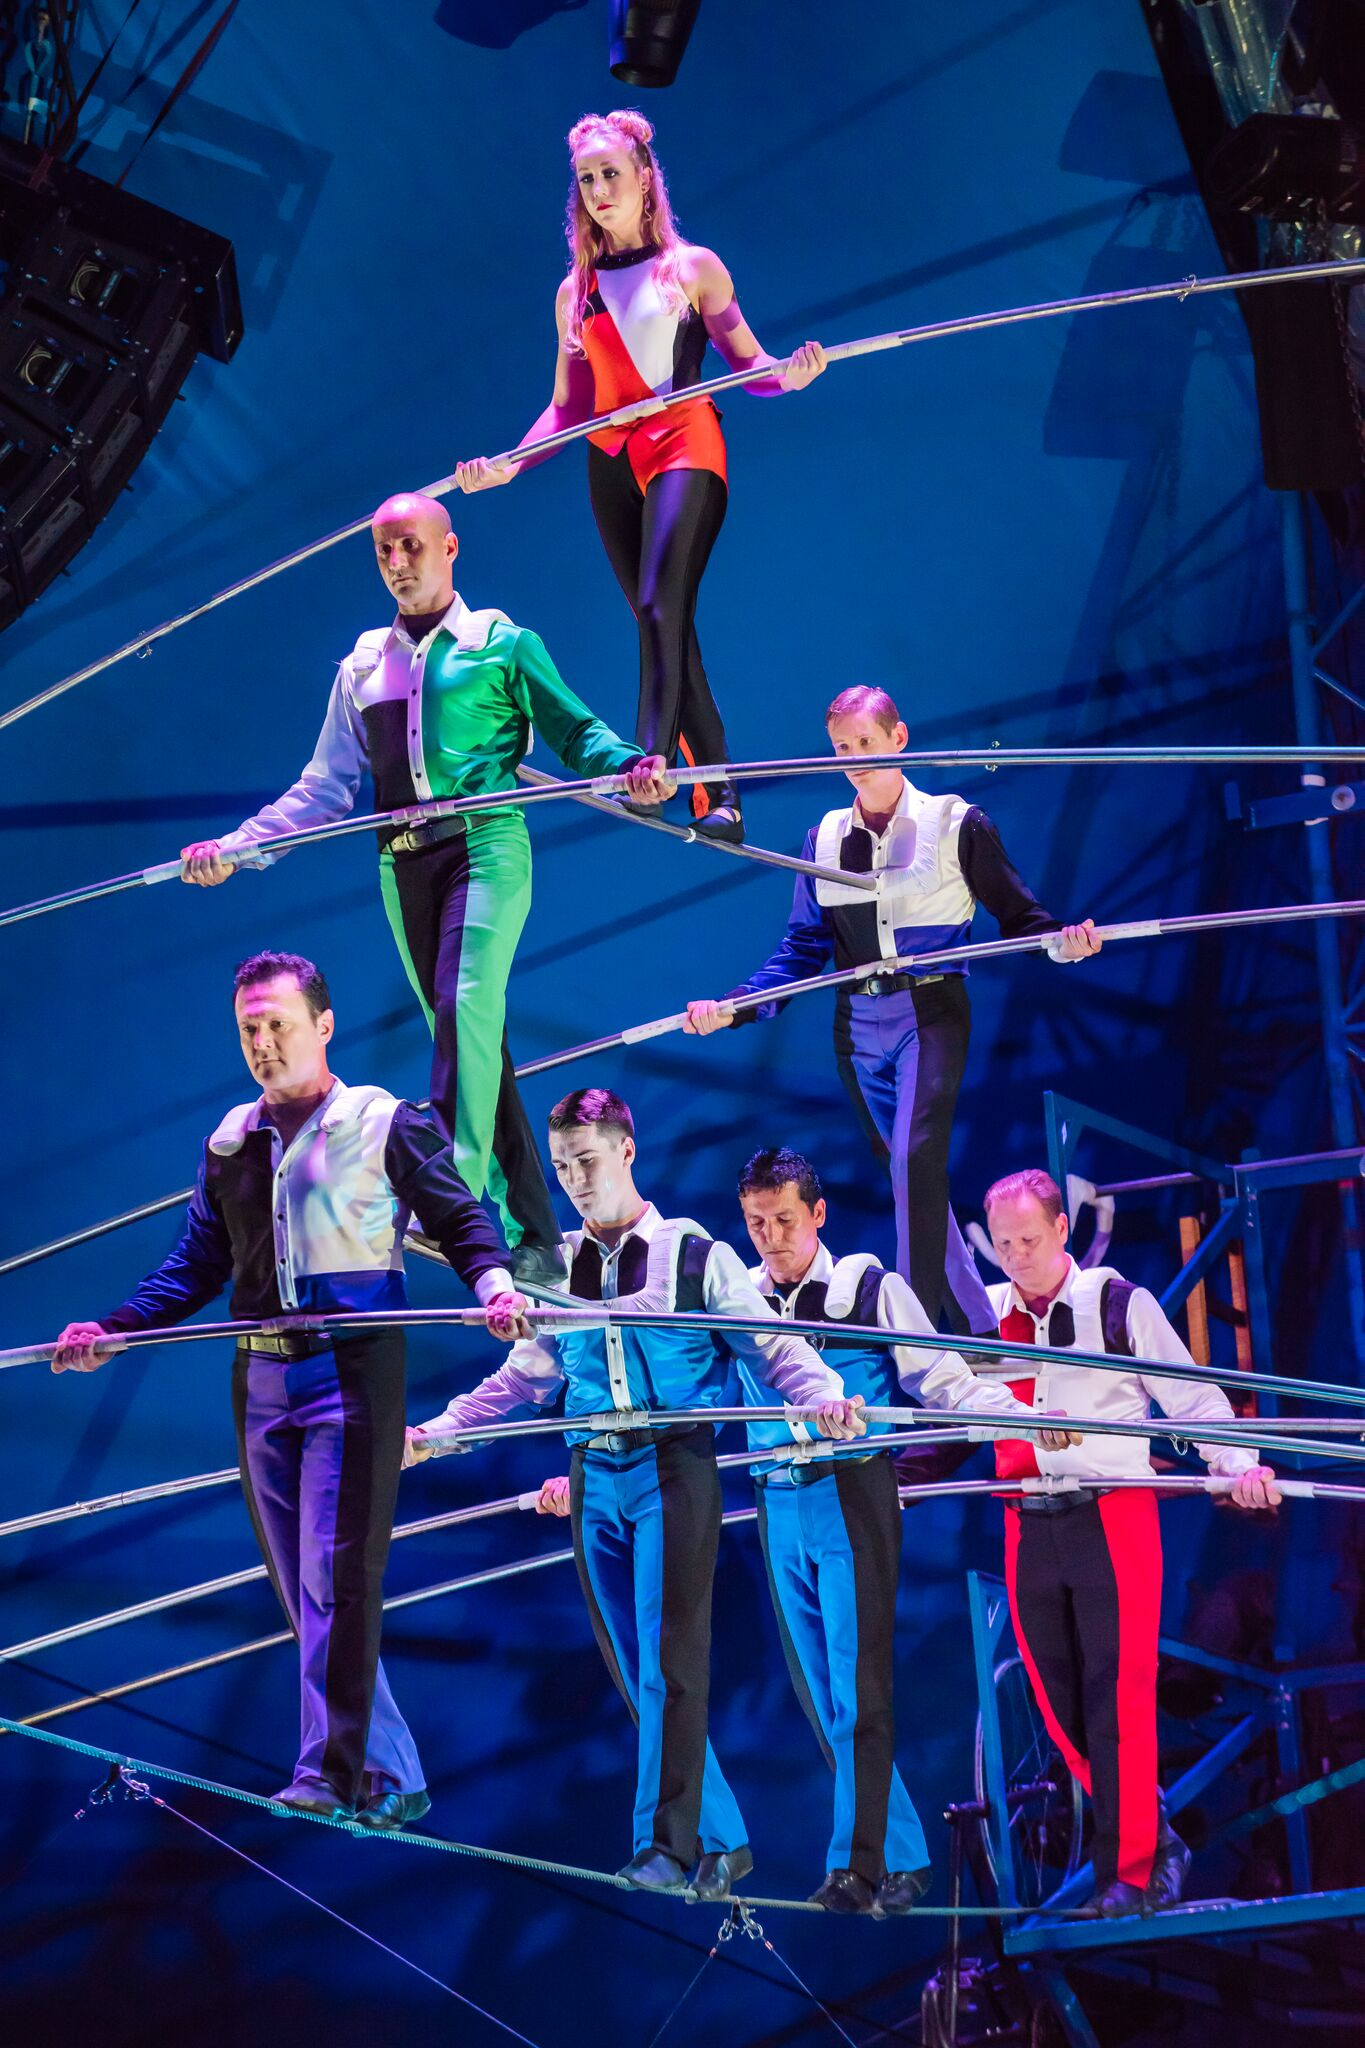 Big Apple Circus. Big Apple Circus Coming to Alpharetta, GA